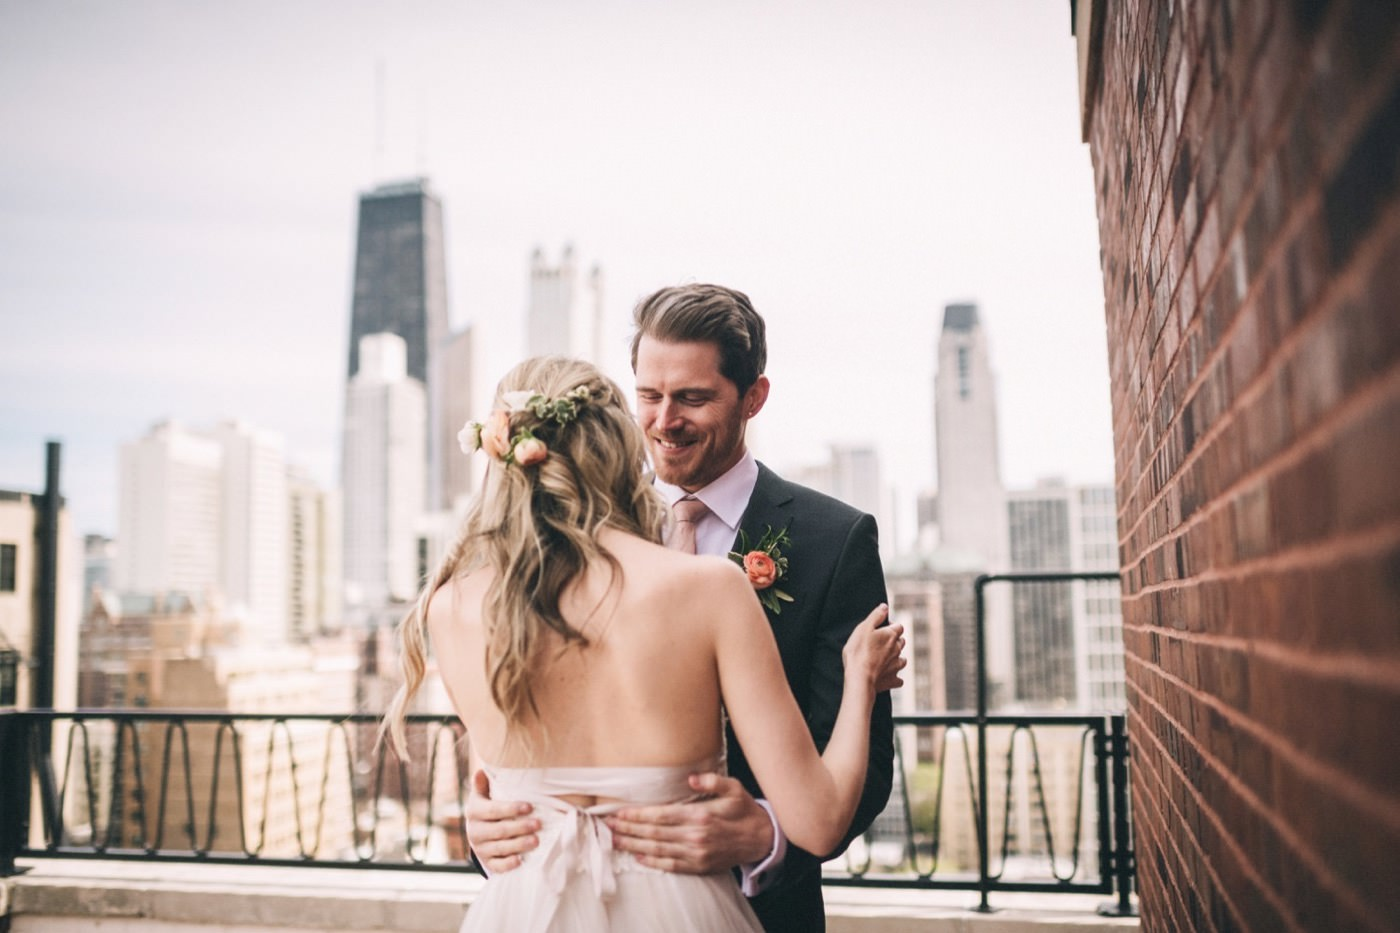 15_Lucy-Daniel-Chicago-Wedding-By-Sarah-Katherine-Davis-Photography0198edit.jpg